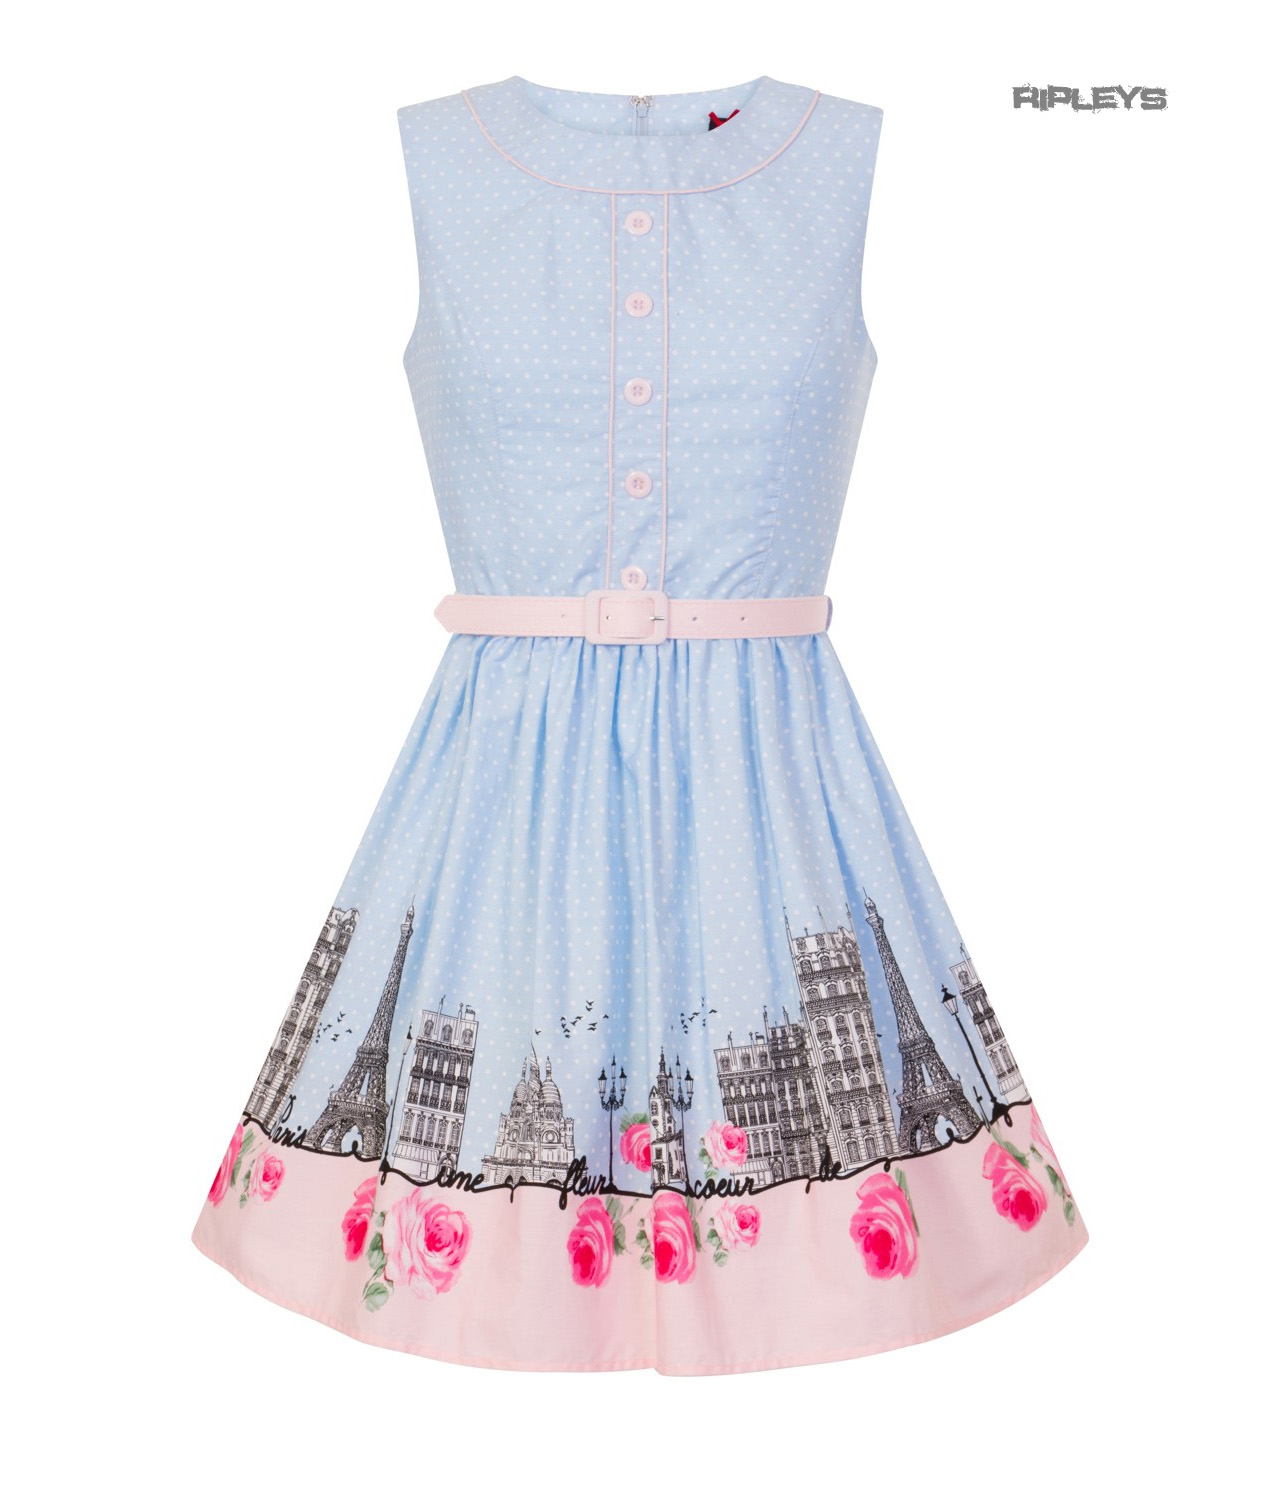 Hell-Bunny-50s-Vintage-Blue-Polka-Dot-PANAME-Mini-Dress-Paris-All-Sizes thumbnail 16